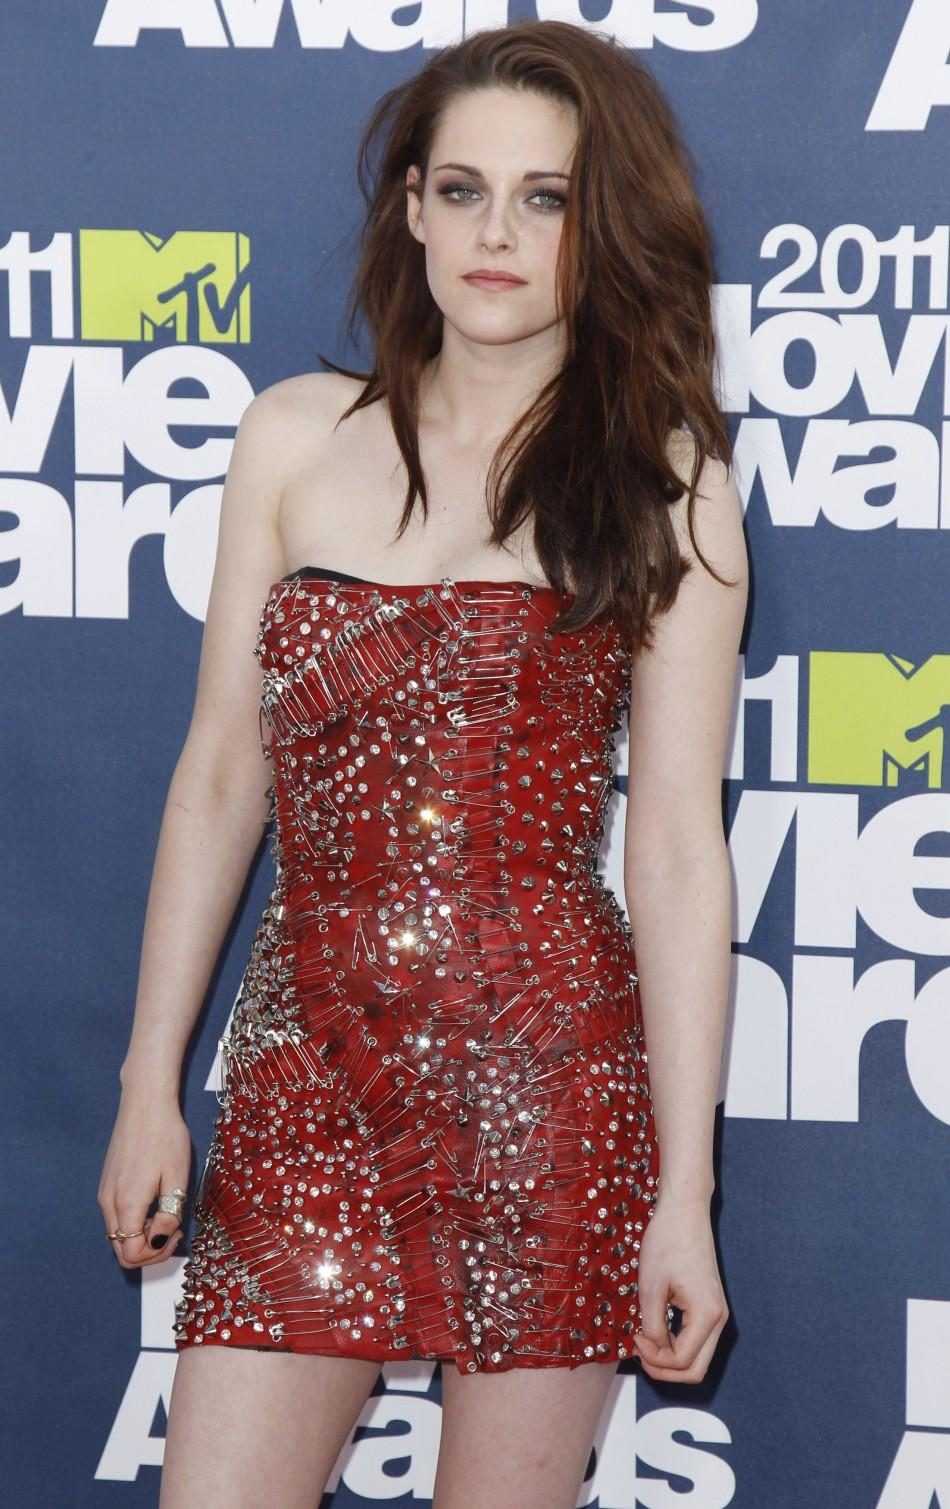 Who looked the best at the 2011 MTV Movie Awards?